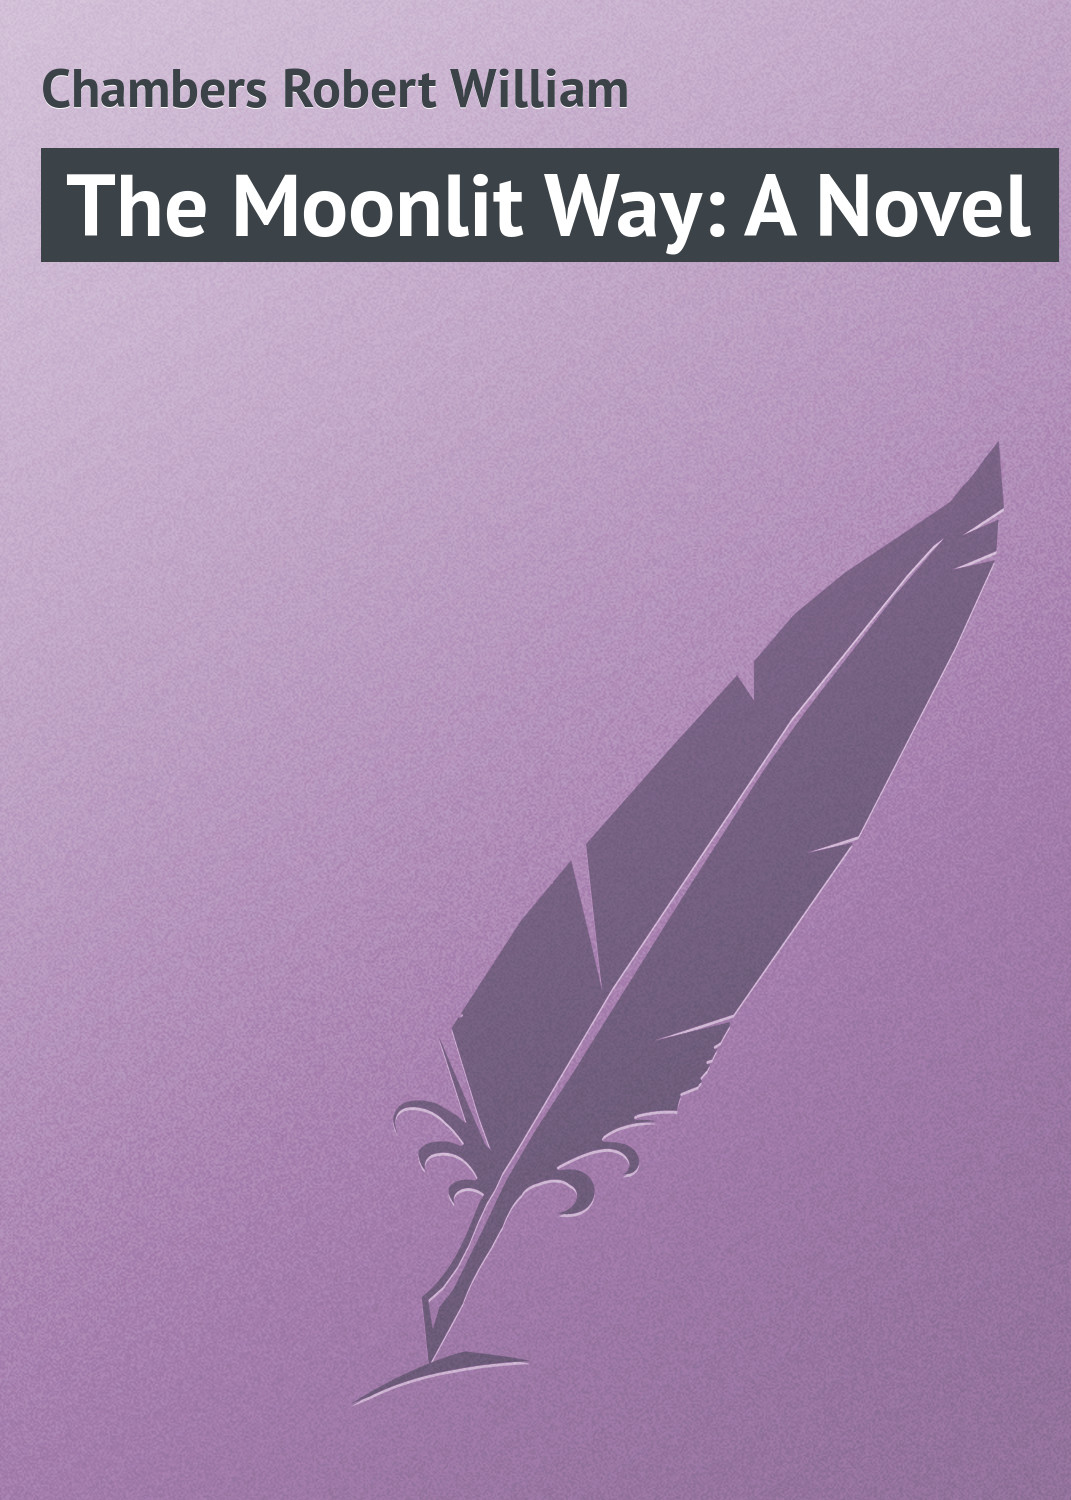 купить Chambers Robert William The Moonlit Way: A Novel в интернет-магазине